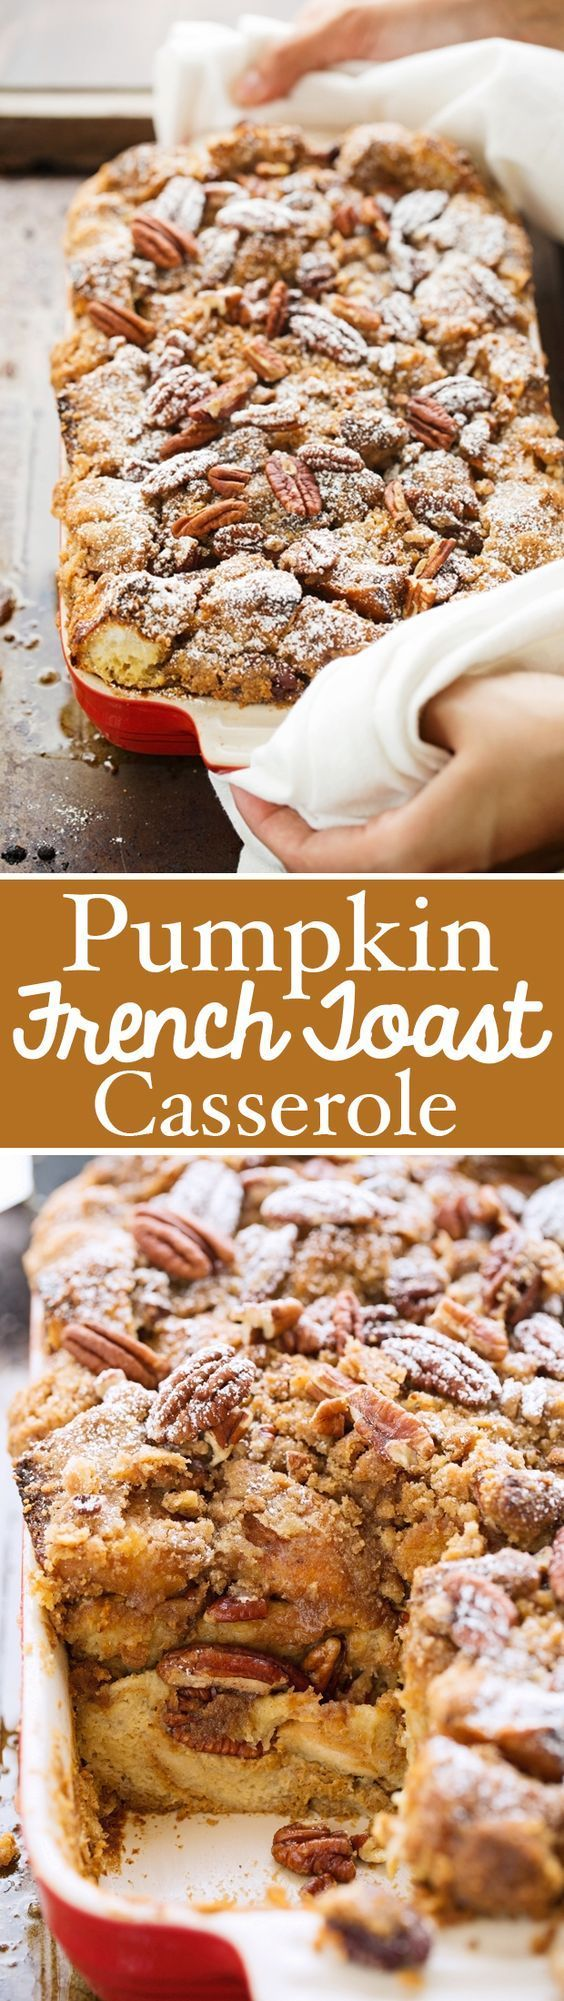 Pumpkin French Toast Casserole Recipe | Little Spice Jar